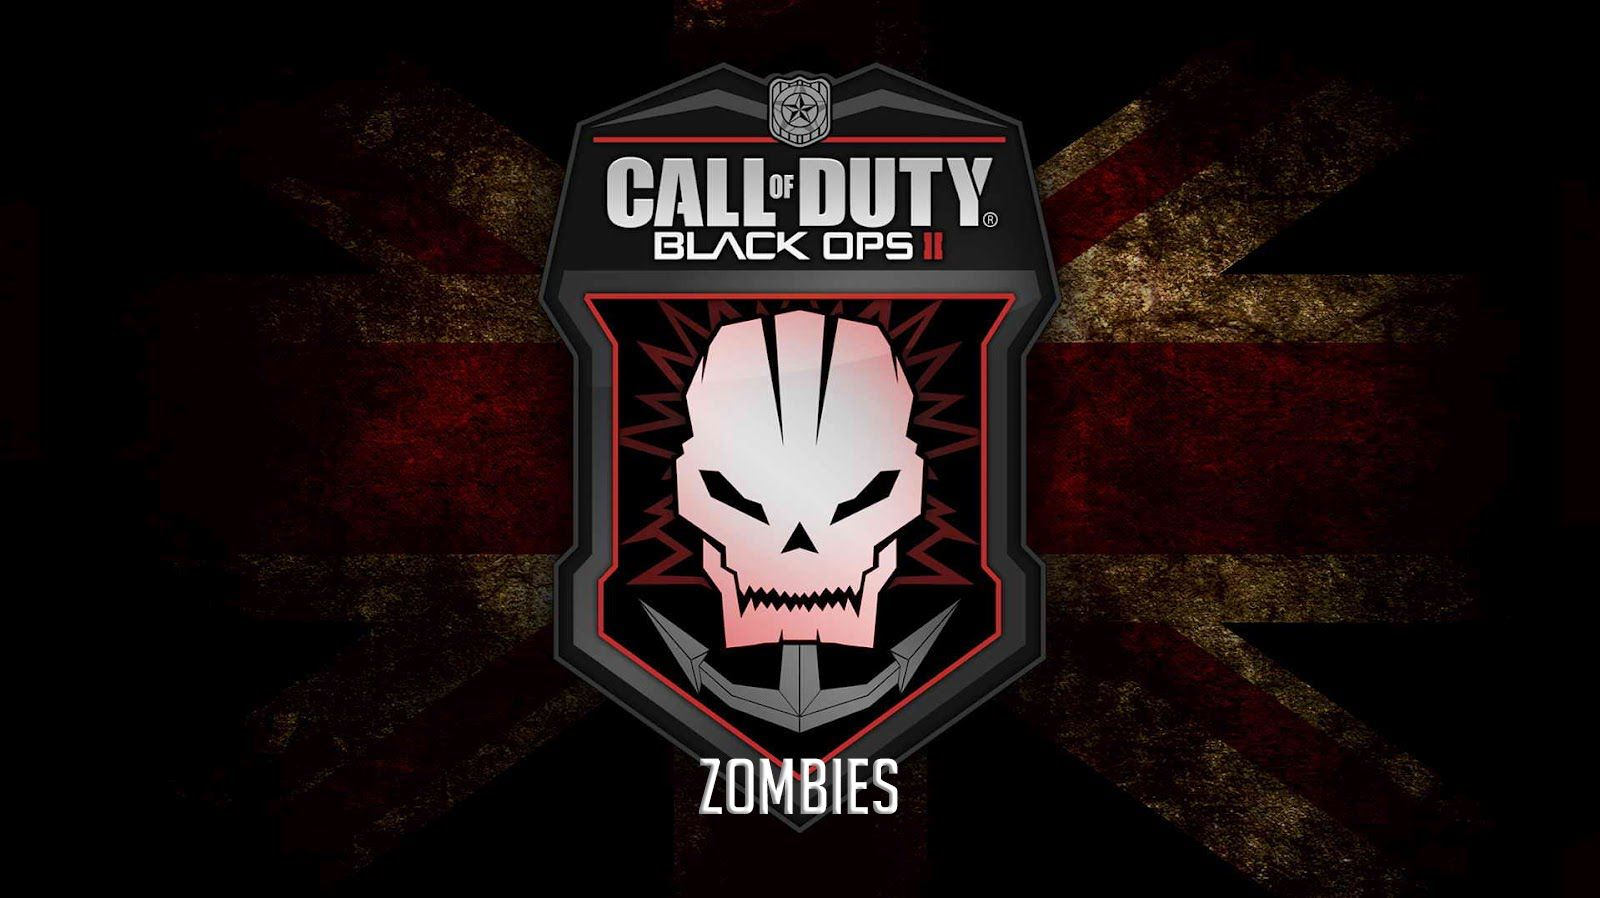 Call Of Duty Black Ops 2 Zombies Origins Ps3 Live Call Of Duty Black Call Of Duty Black Ops Iii Black Ops